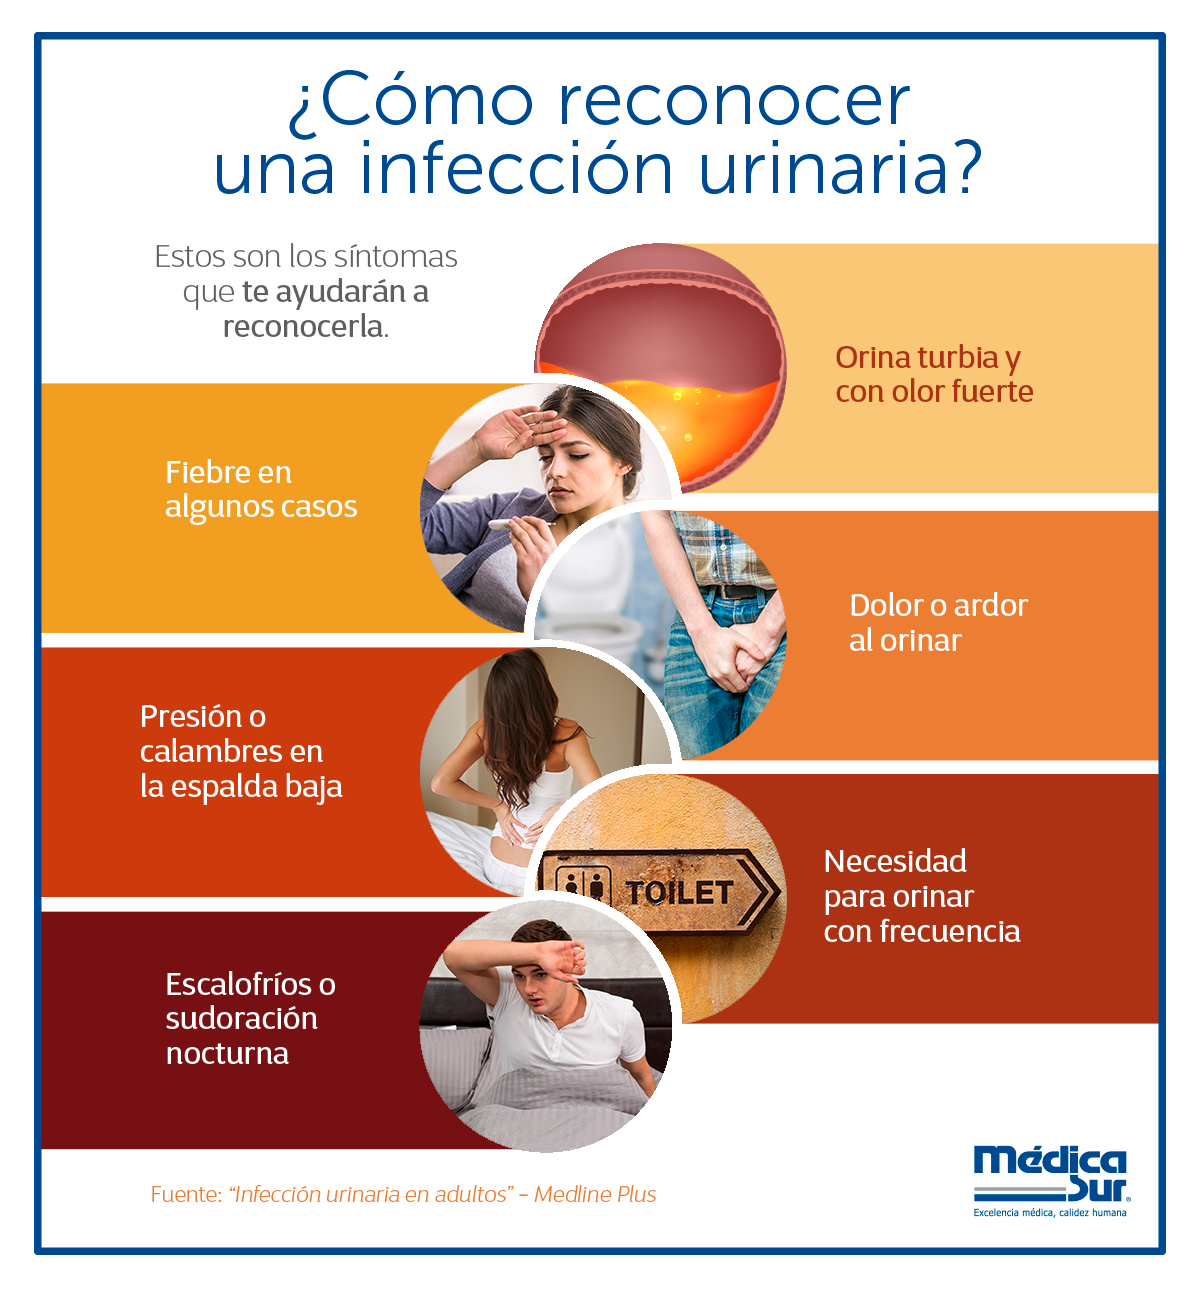 medline plus enciclopedia medica diabetes cure